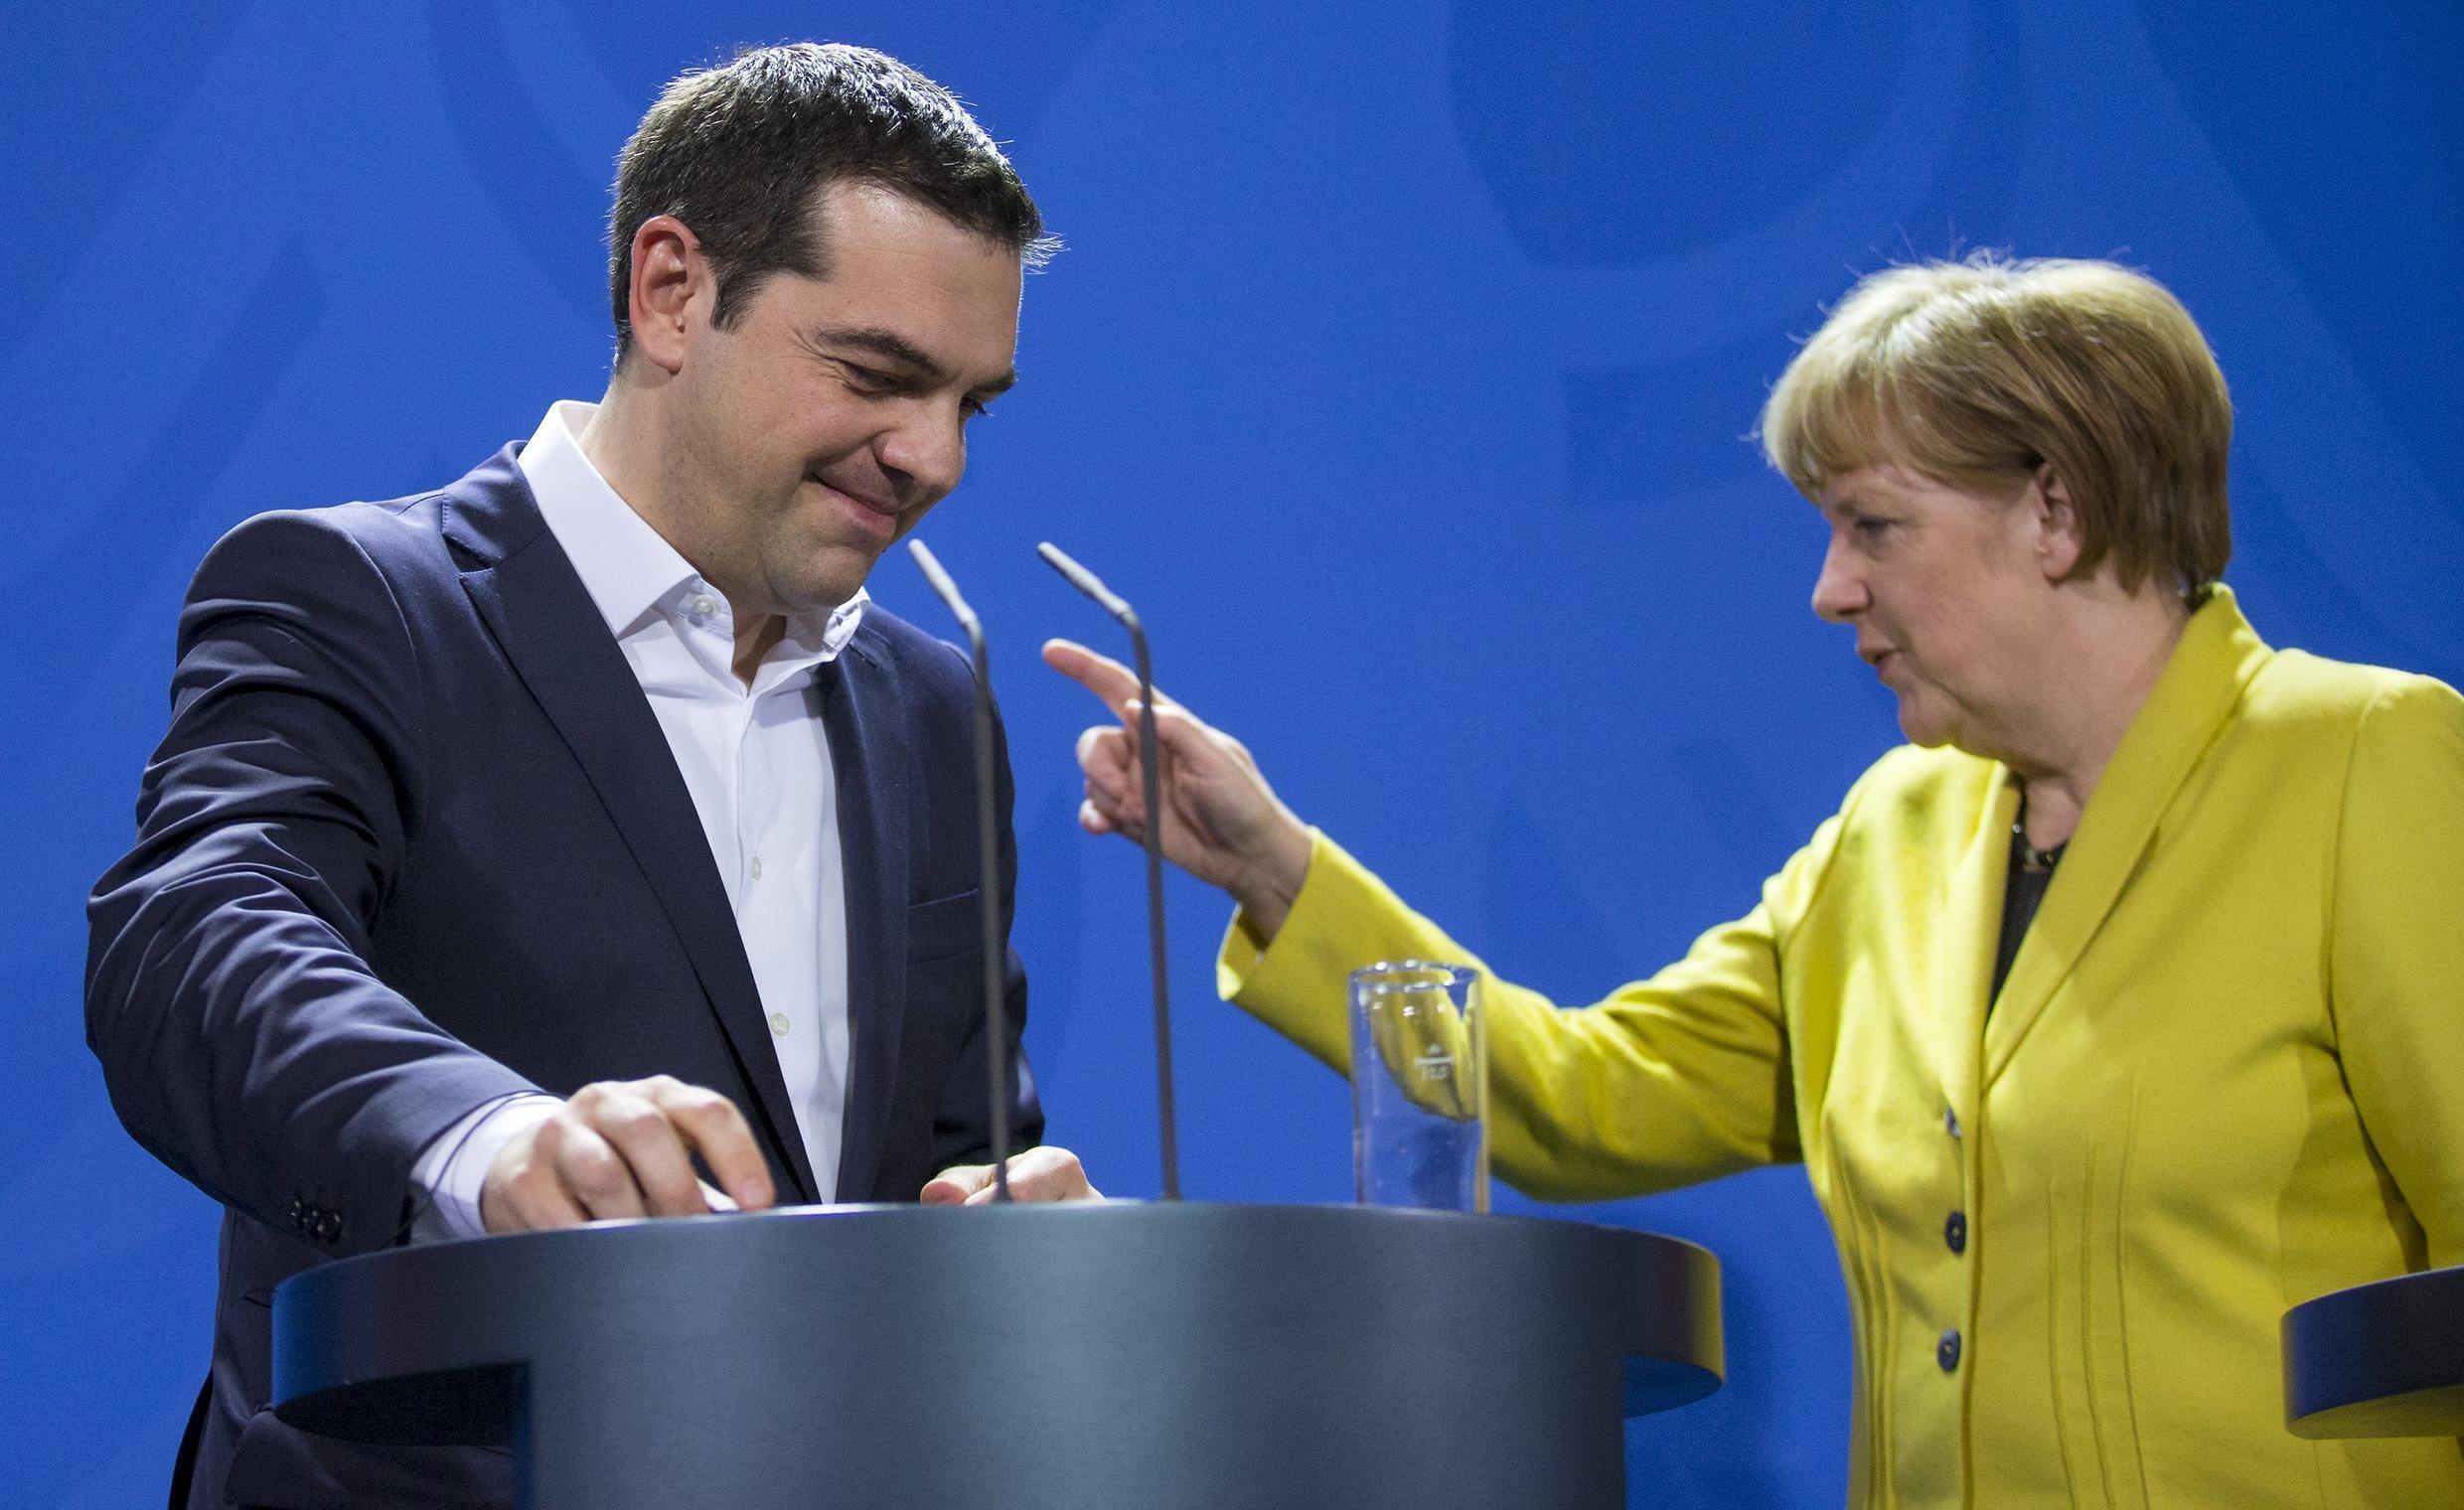 German Chancellor Angela Merkel and Greek Prime Minister Alexis Tsipras share a podium following talks at the Chancellery in Berlin March 23, 2015.